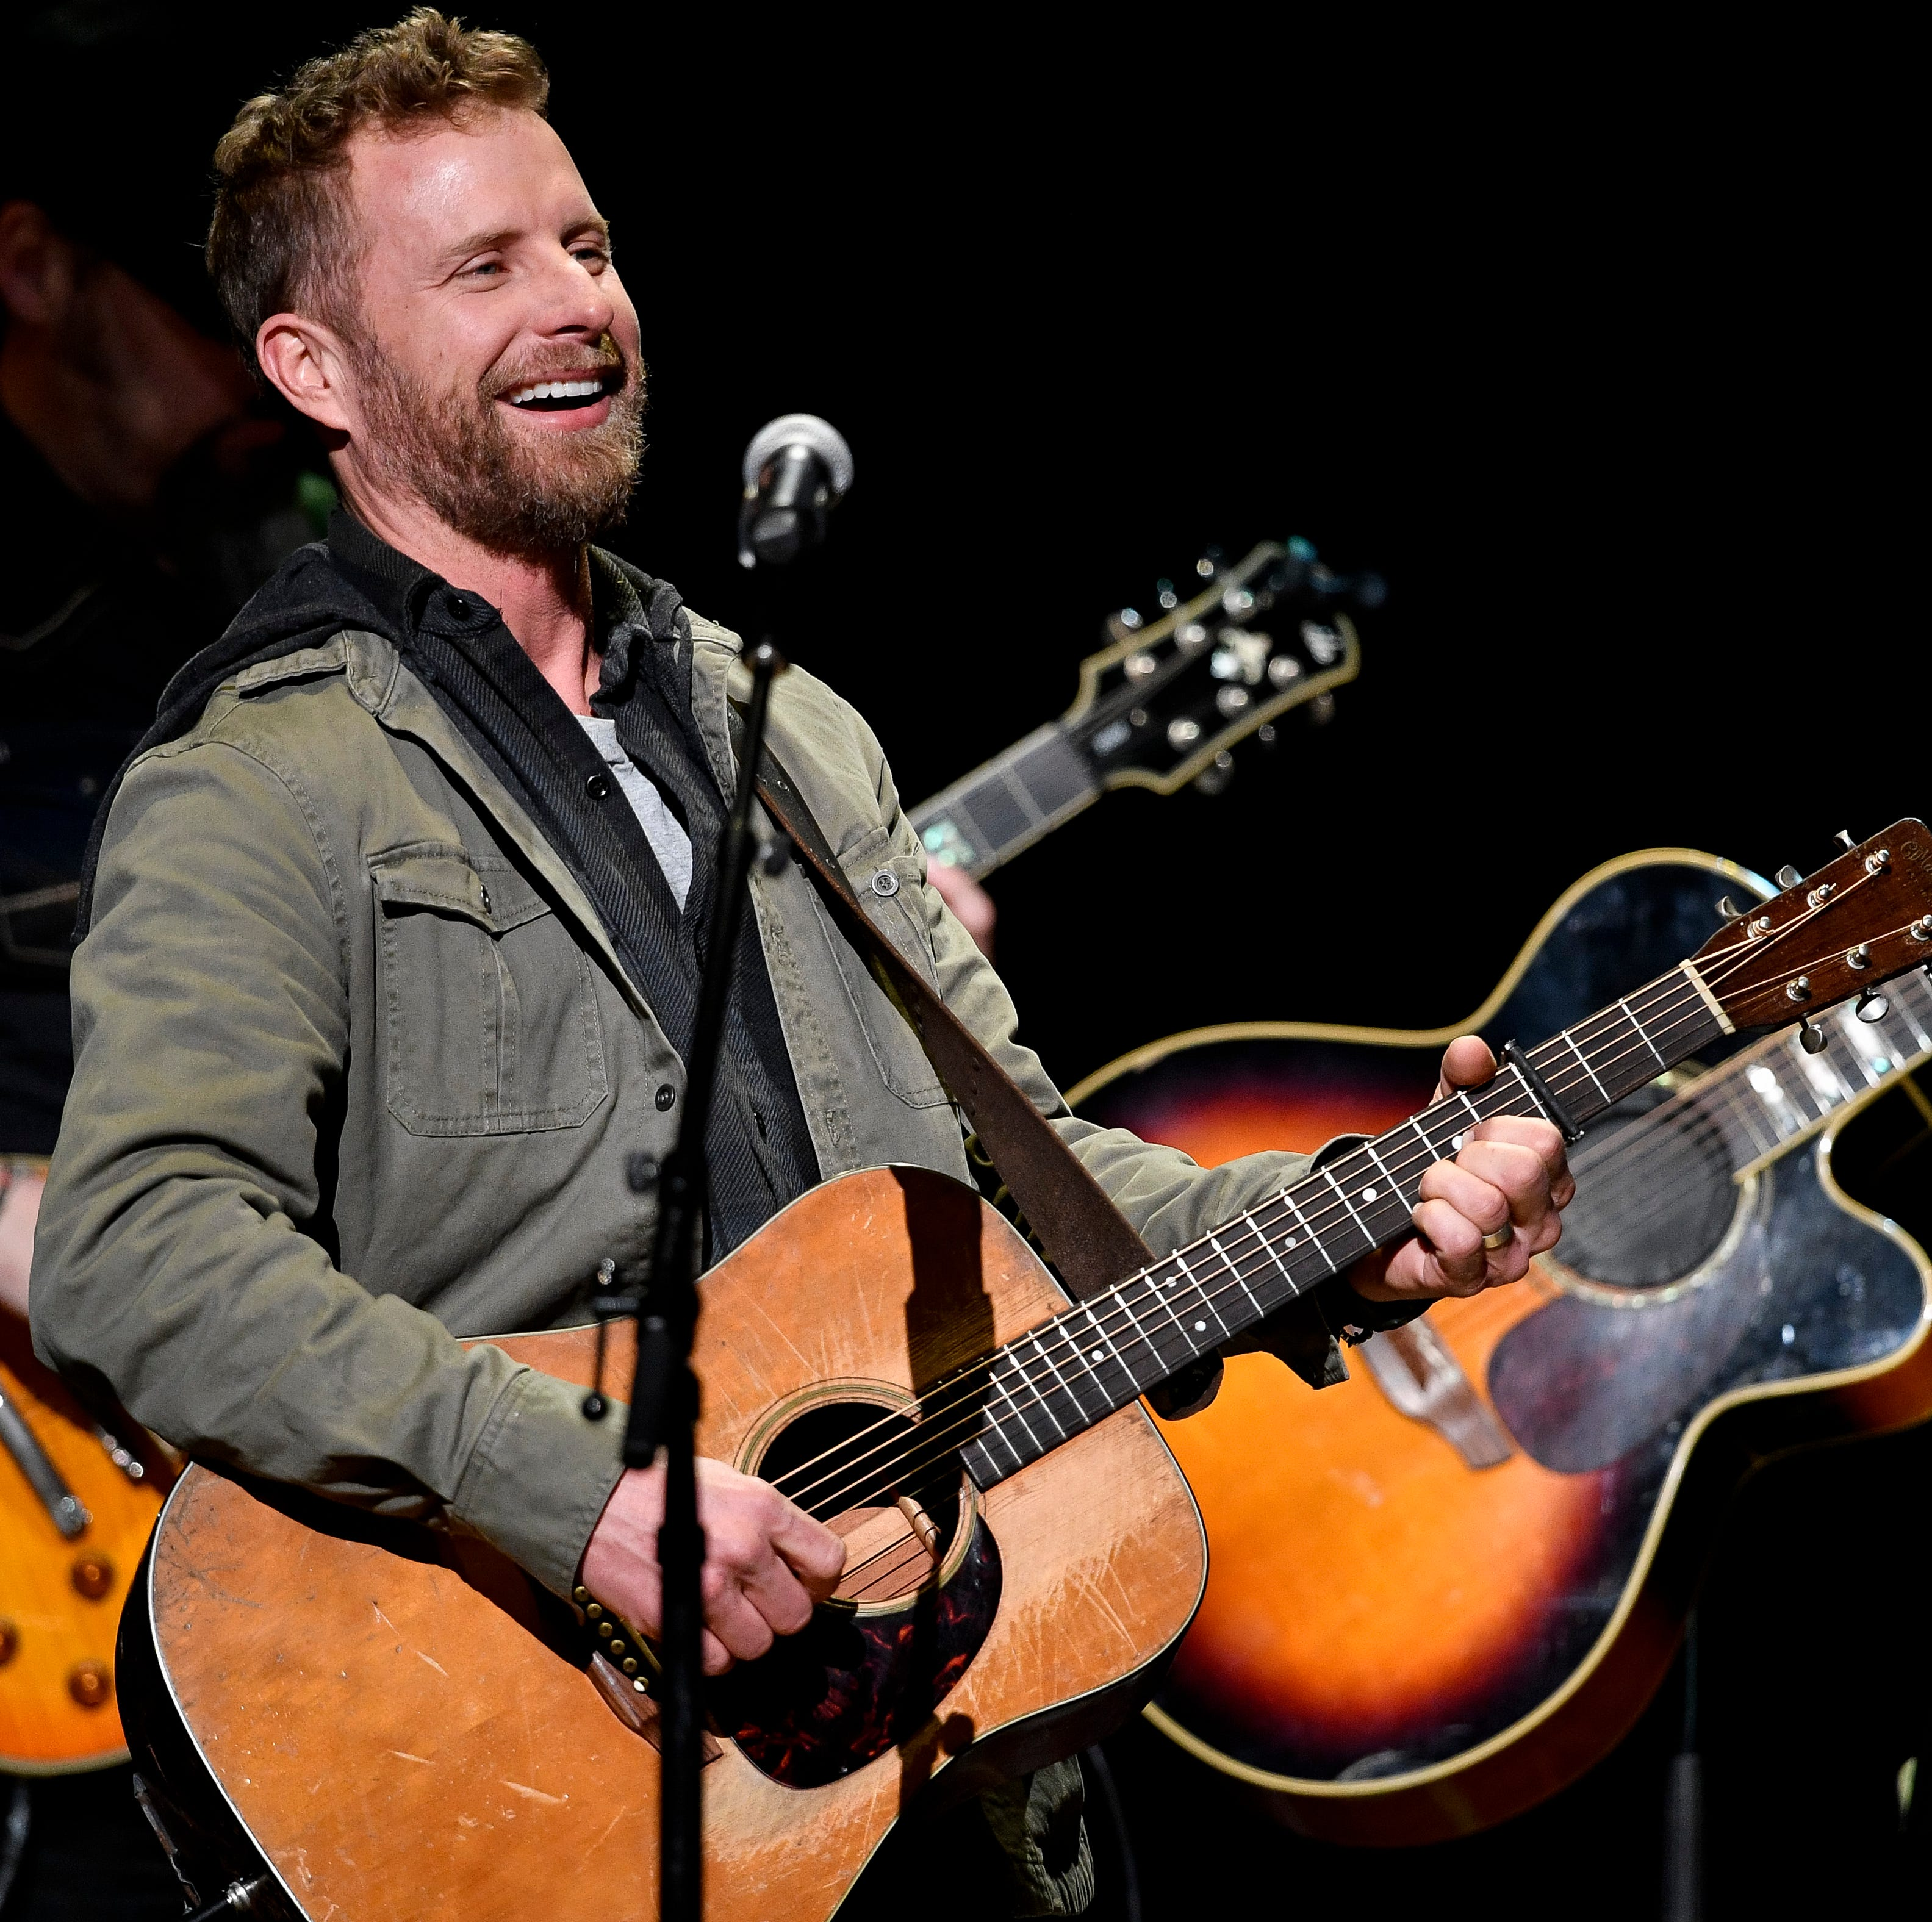 Dierks Bentley: From hip thrusts to hit songs, a 'bigger hug' of a show awaits